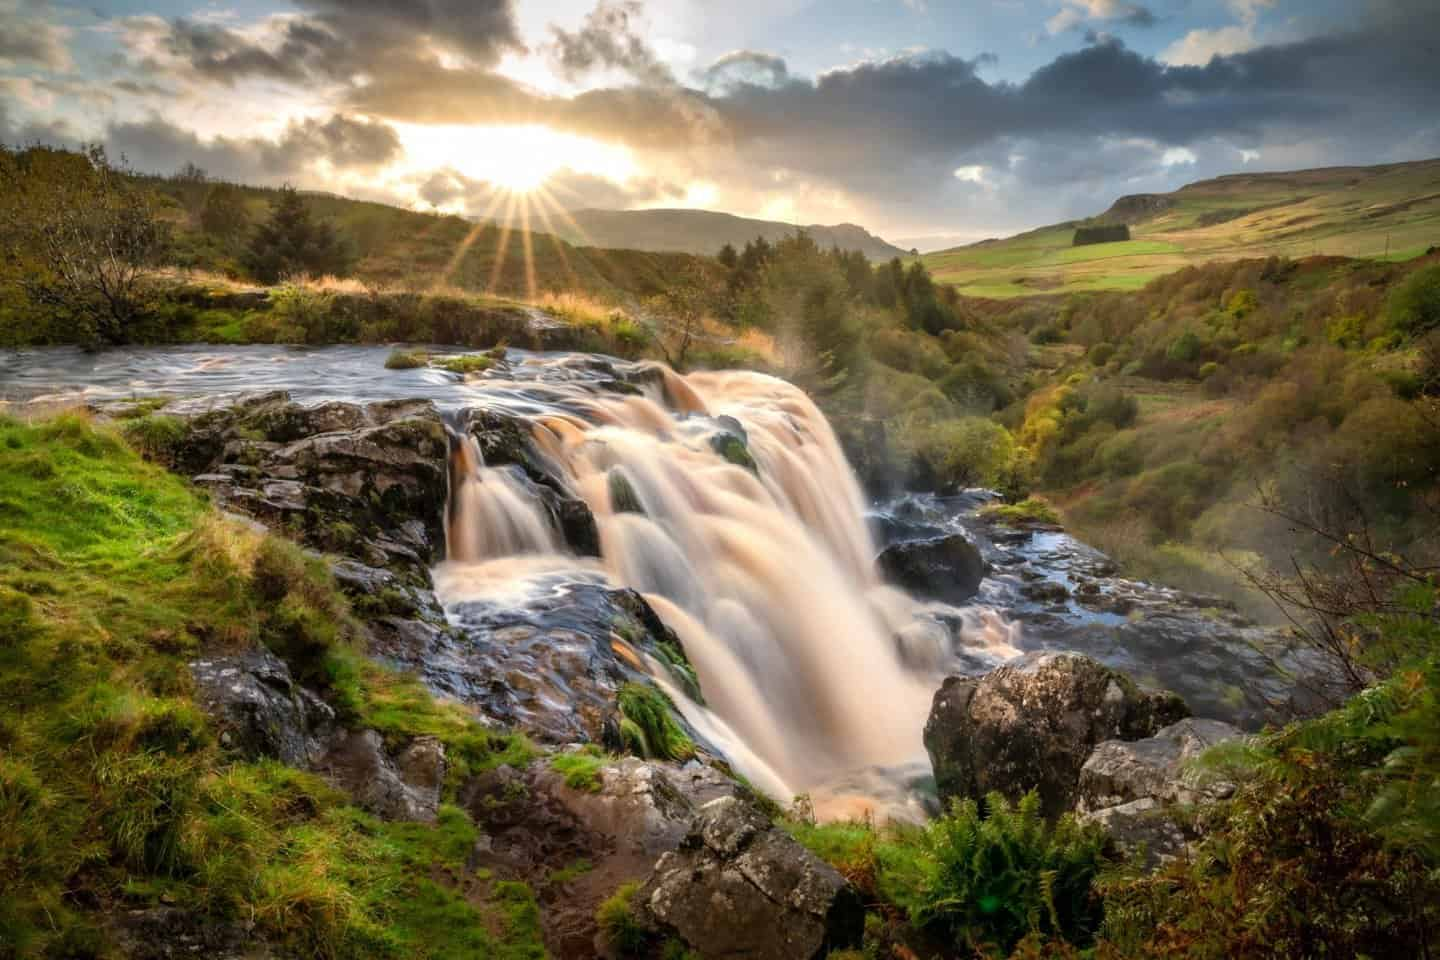 A magical sunset at the Loup of Fintry in Scotland.